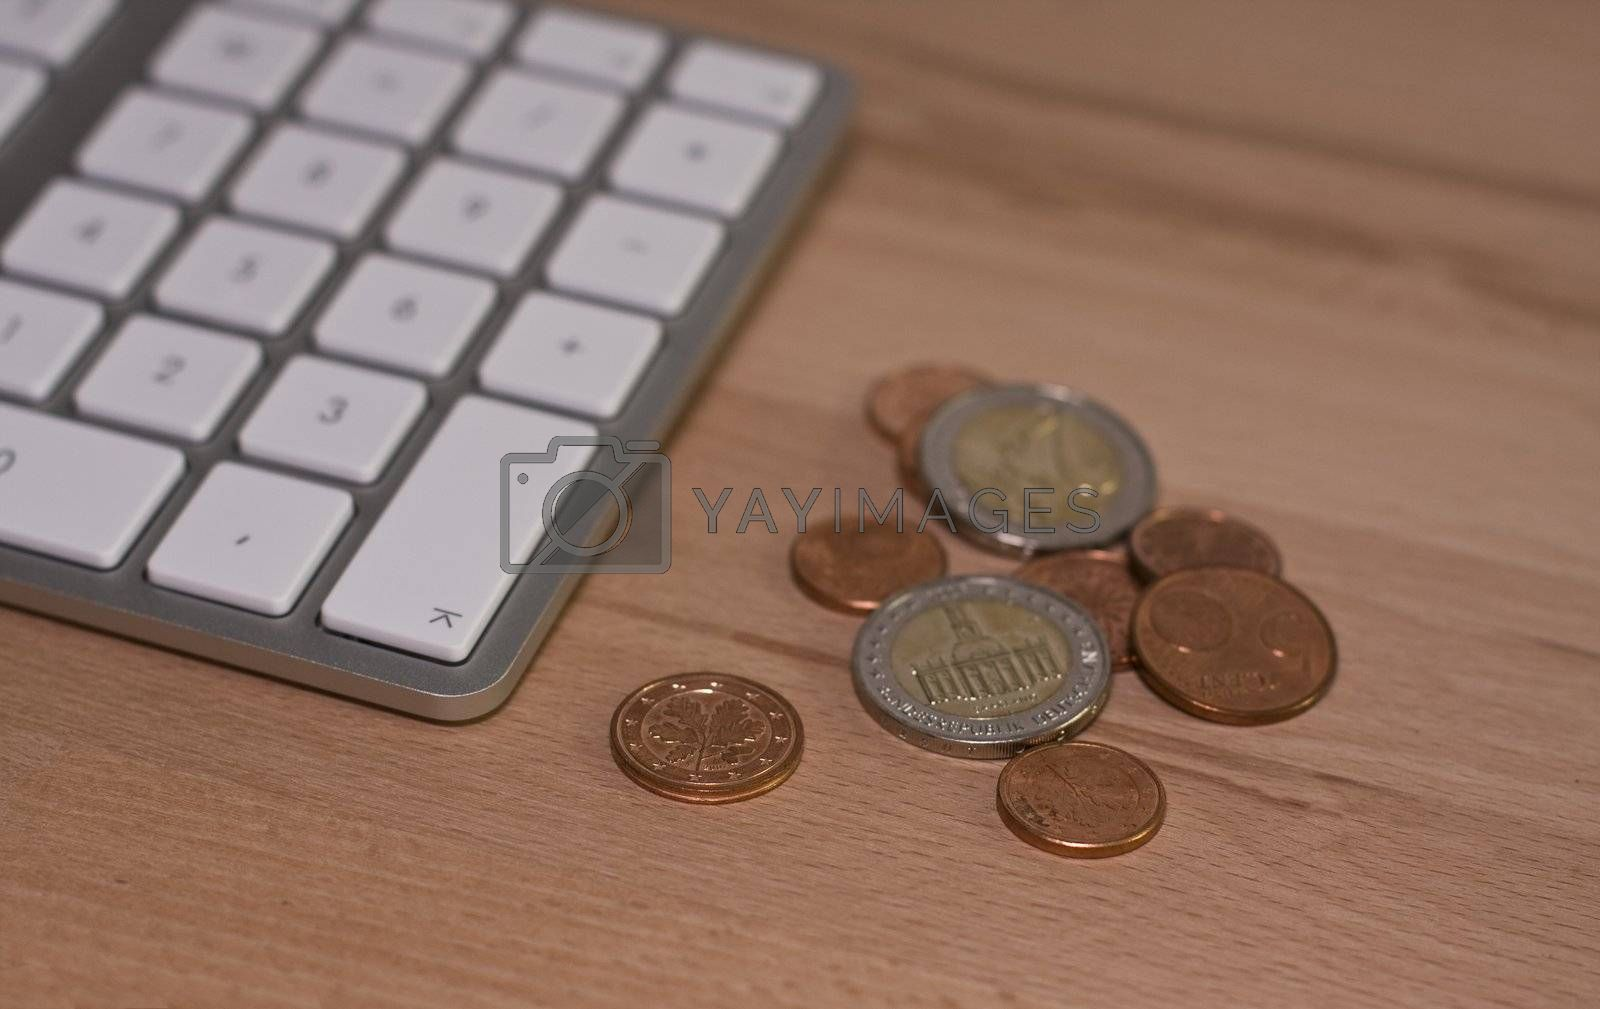 Keyboard and euro coins on wooden desk with nice blur. Place for text